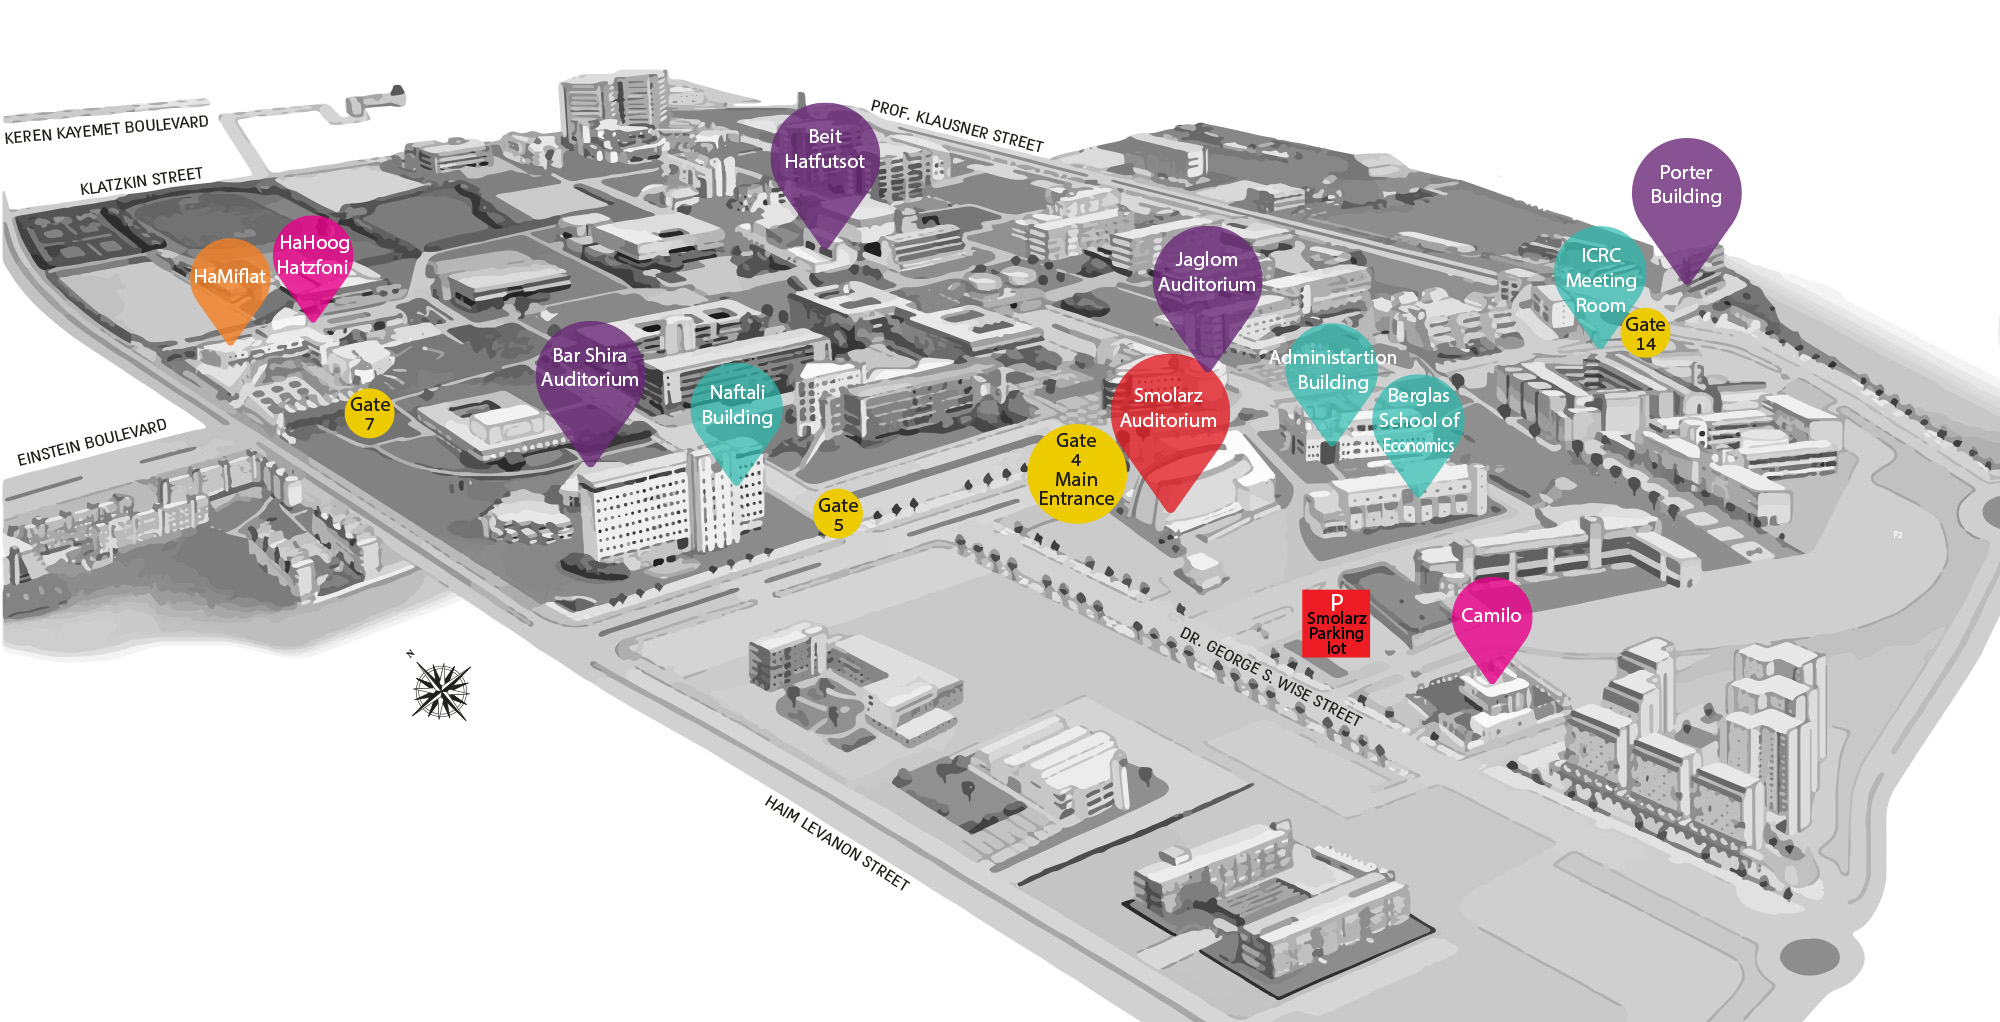 An image illustrating the campus map